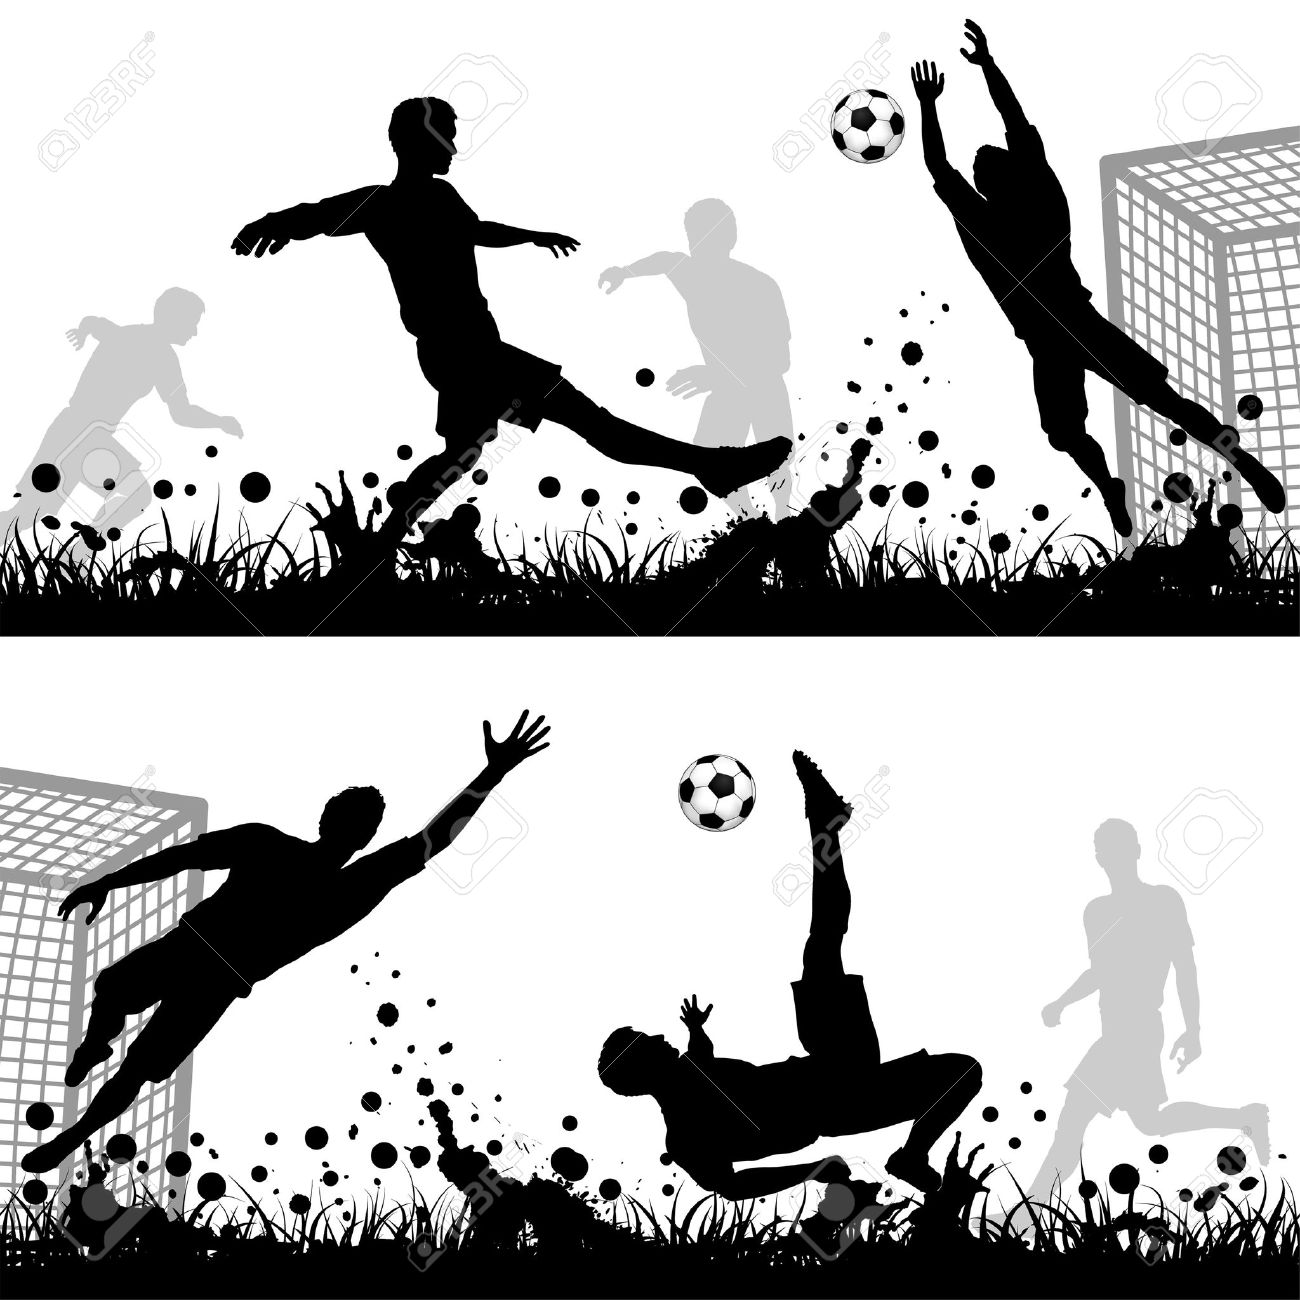 Soccer goalie black and white